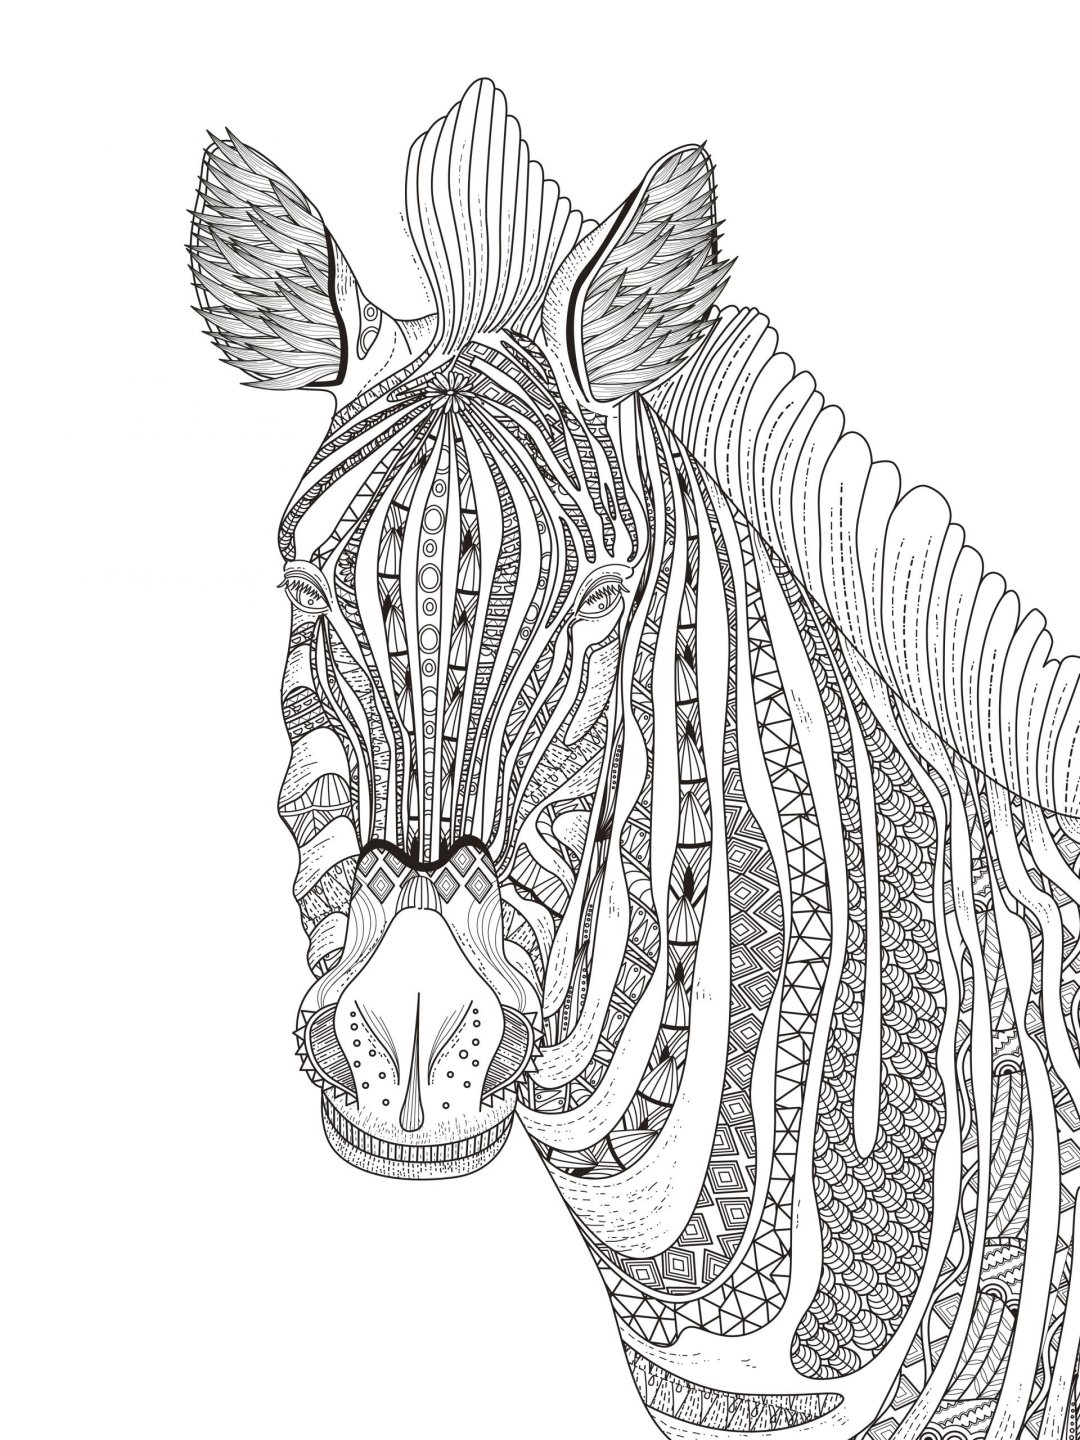 zebra 7 scaled - Cognitive Exercises for AE Patients